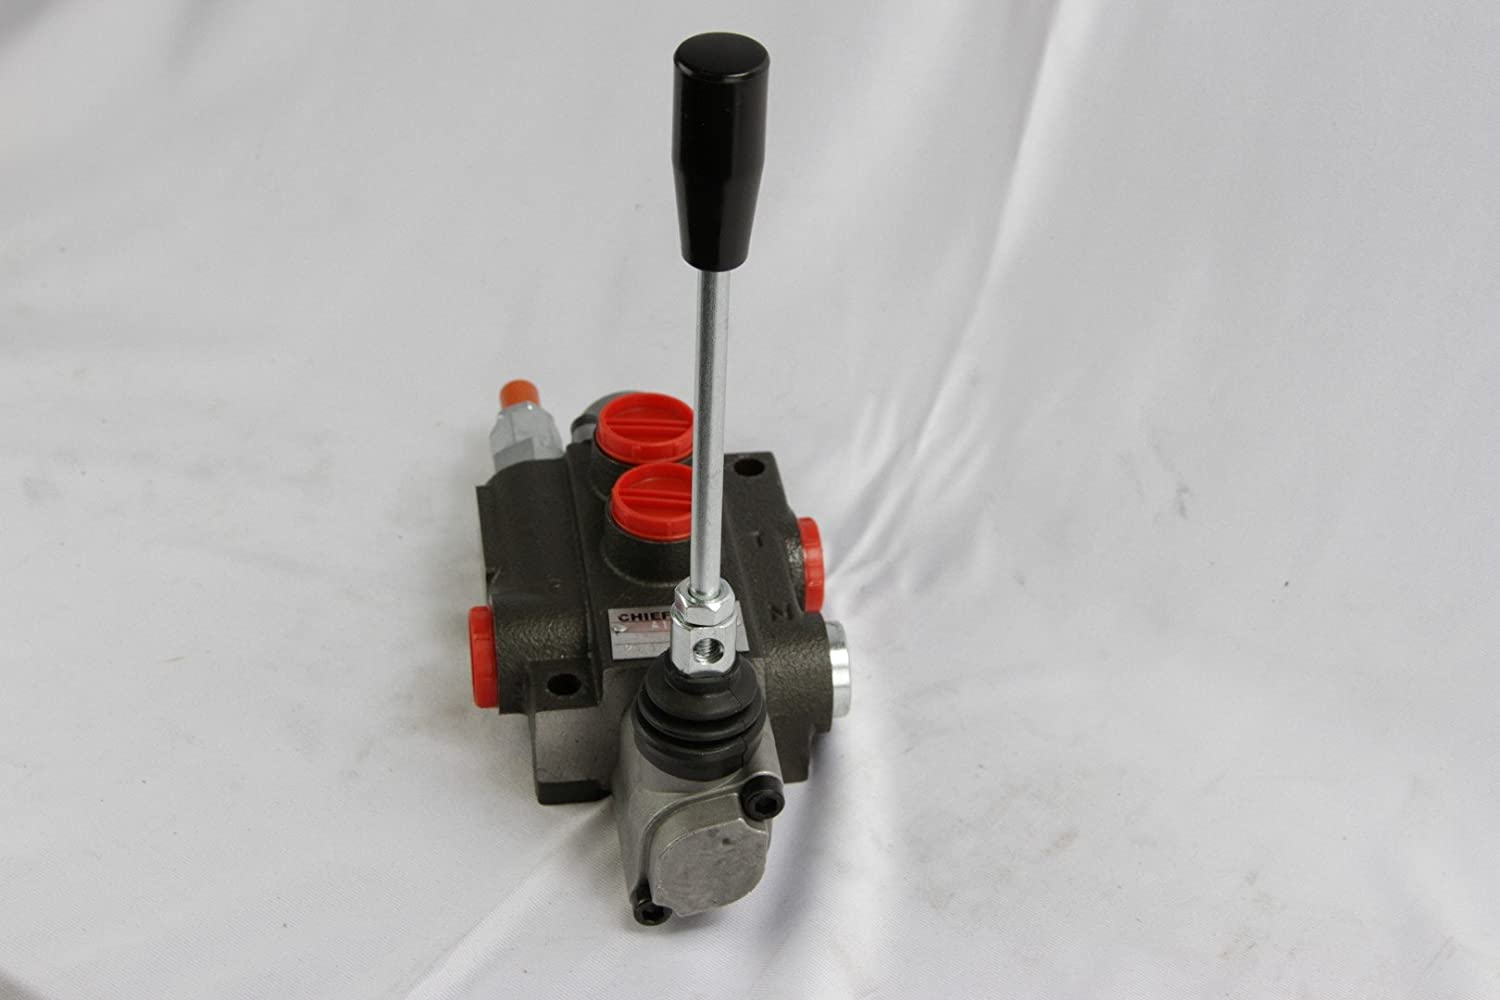 10 GPM 220906 3-pos CHIEF G Series P40 Directional Control Valve: 1 Spool 3625 PSI with SAE #8 Work and SAE #10 Outlet Ports 1500-3625 PSI Relief Setting Spring Center